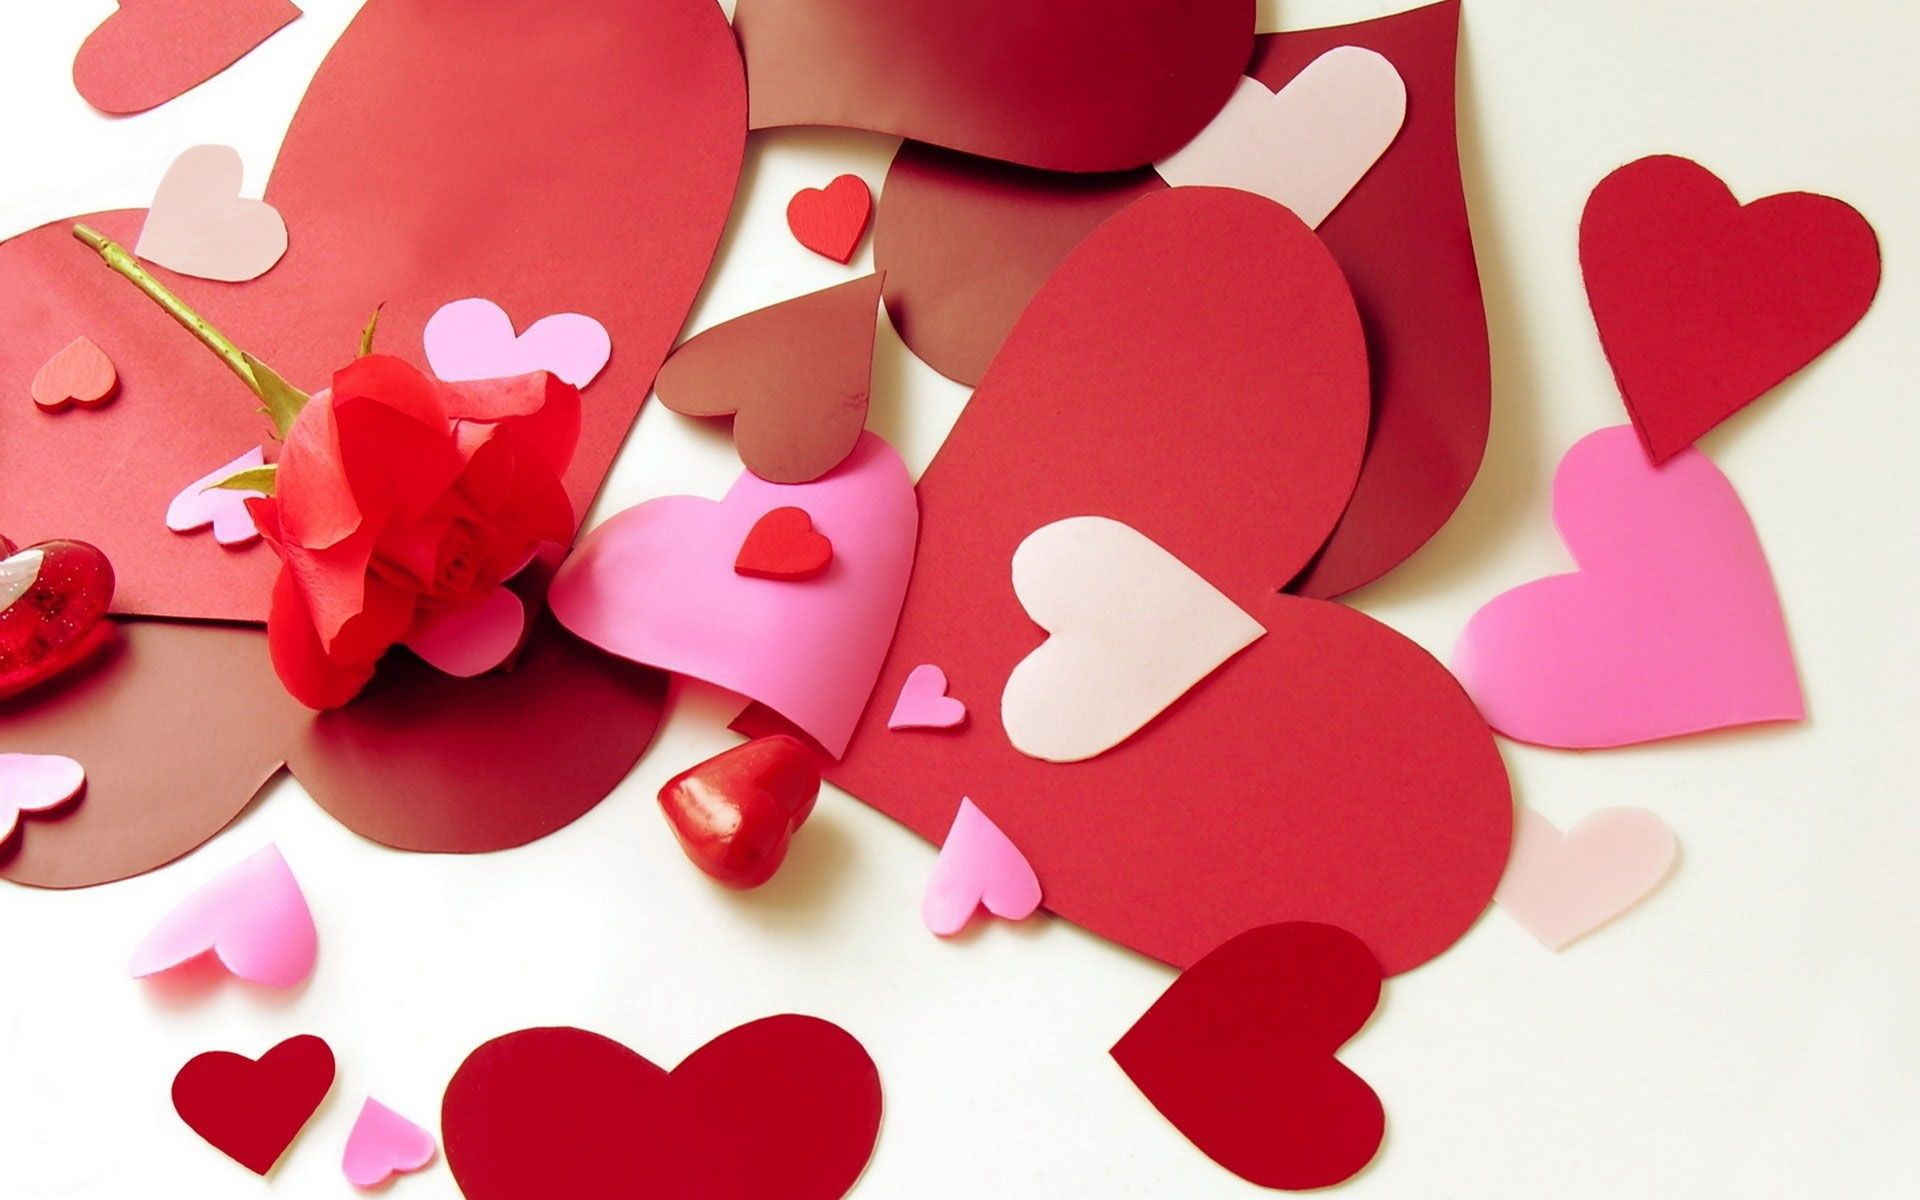 best download the images of love heart - cute love heart wallpaper